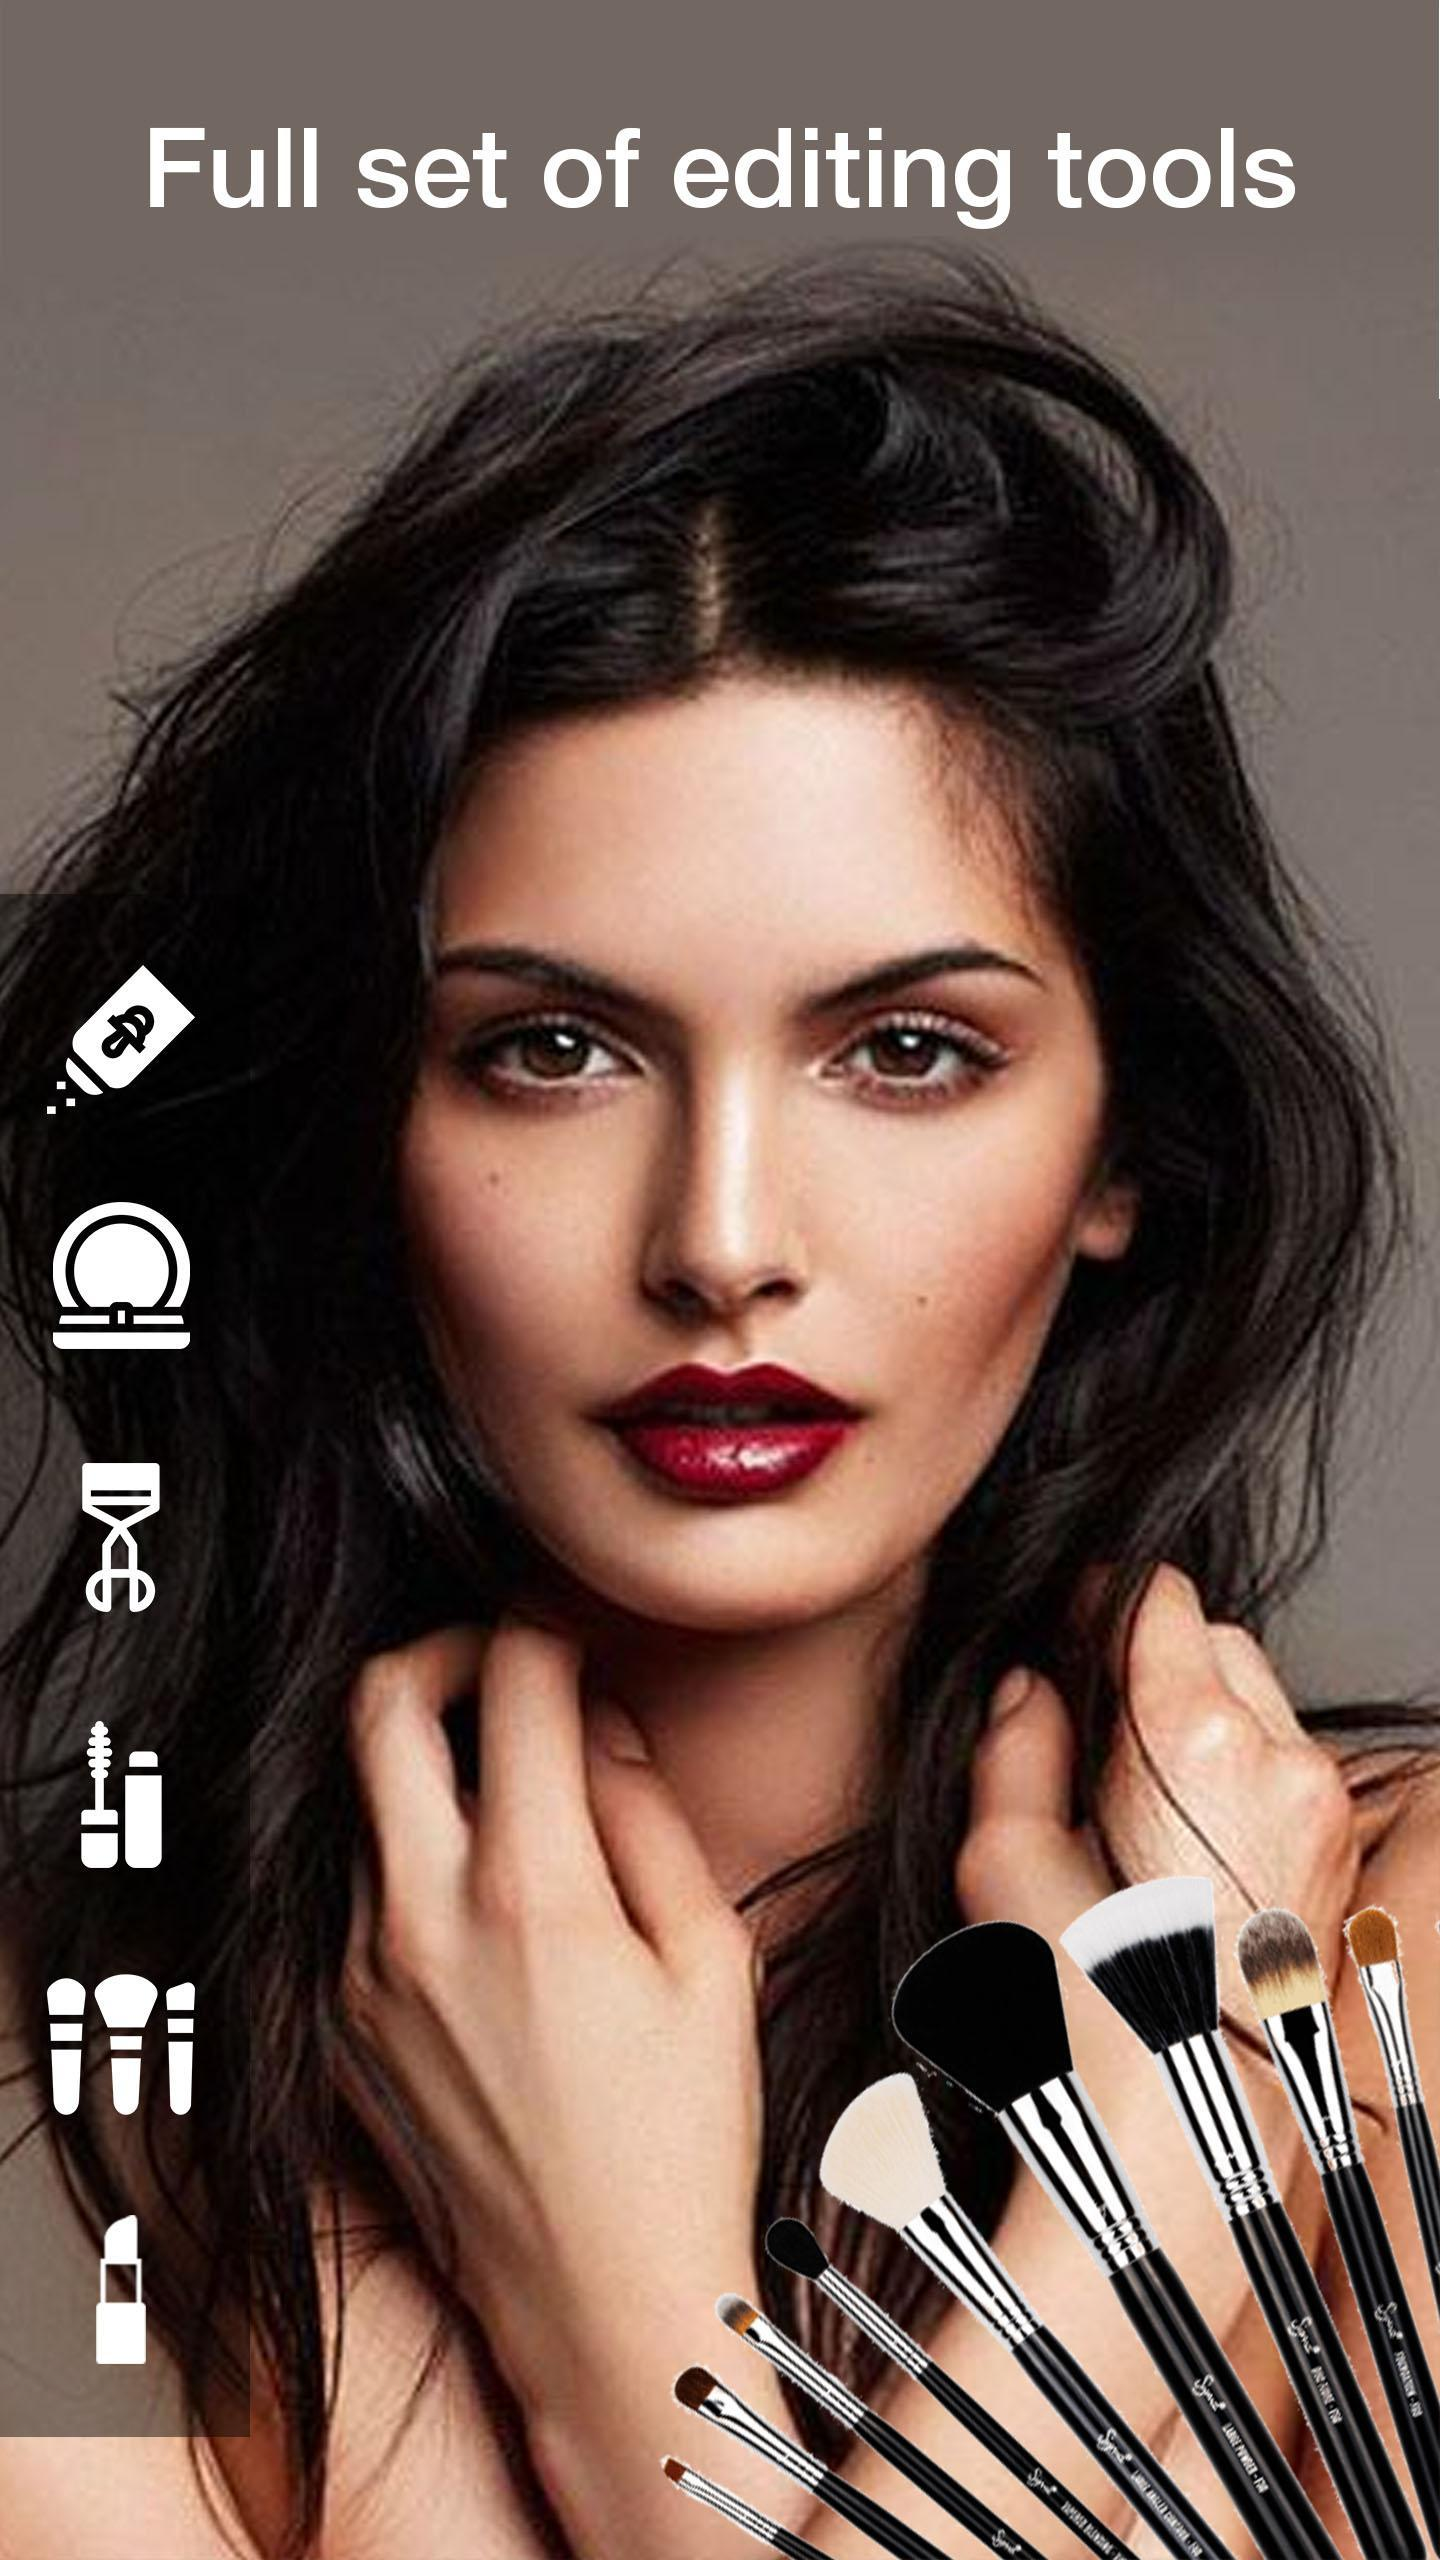 Photo Editor Makeup Face Beauty, Camera Selfie App for Android - APK